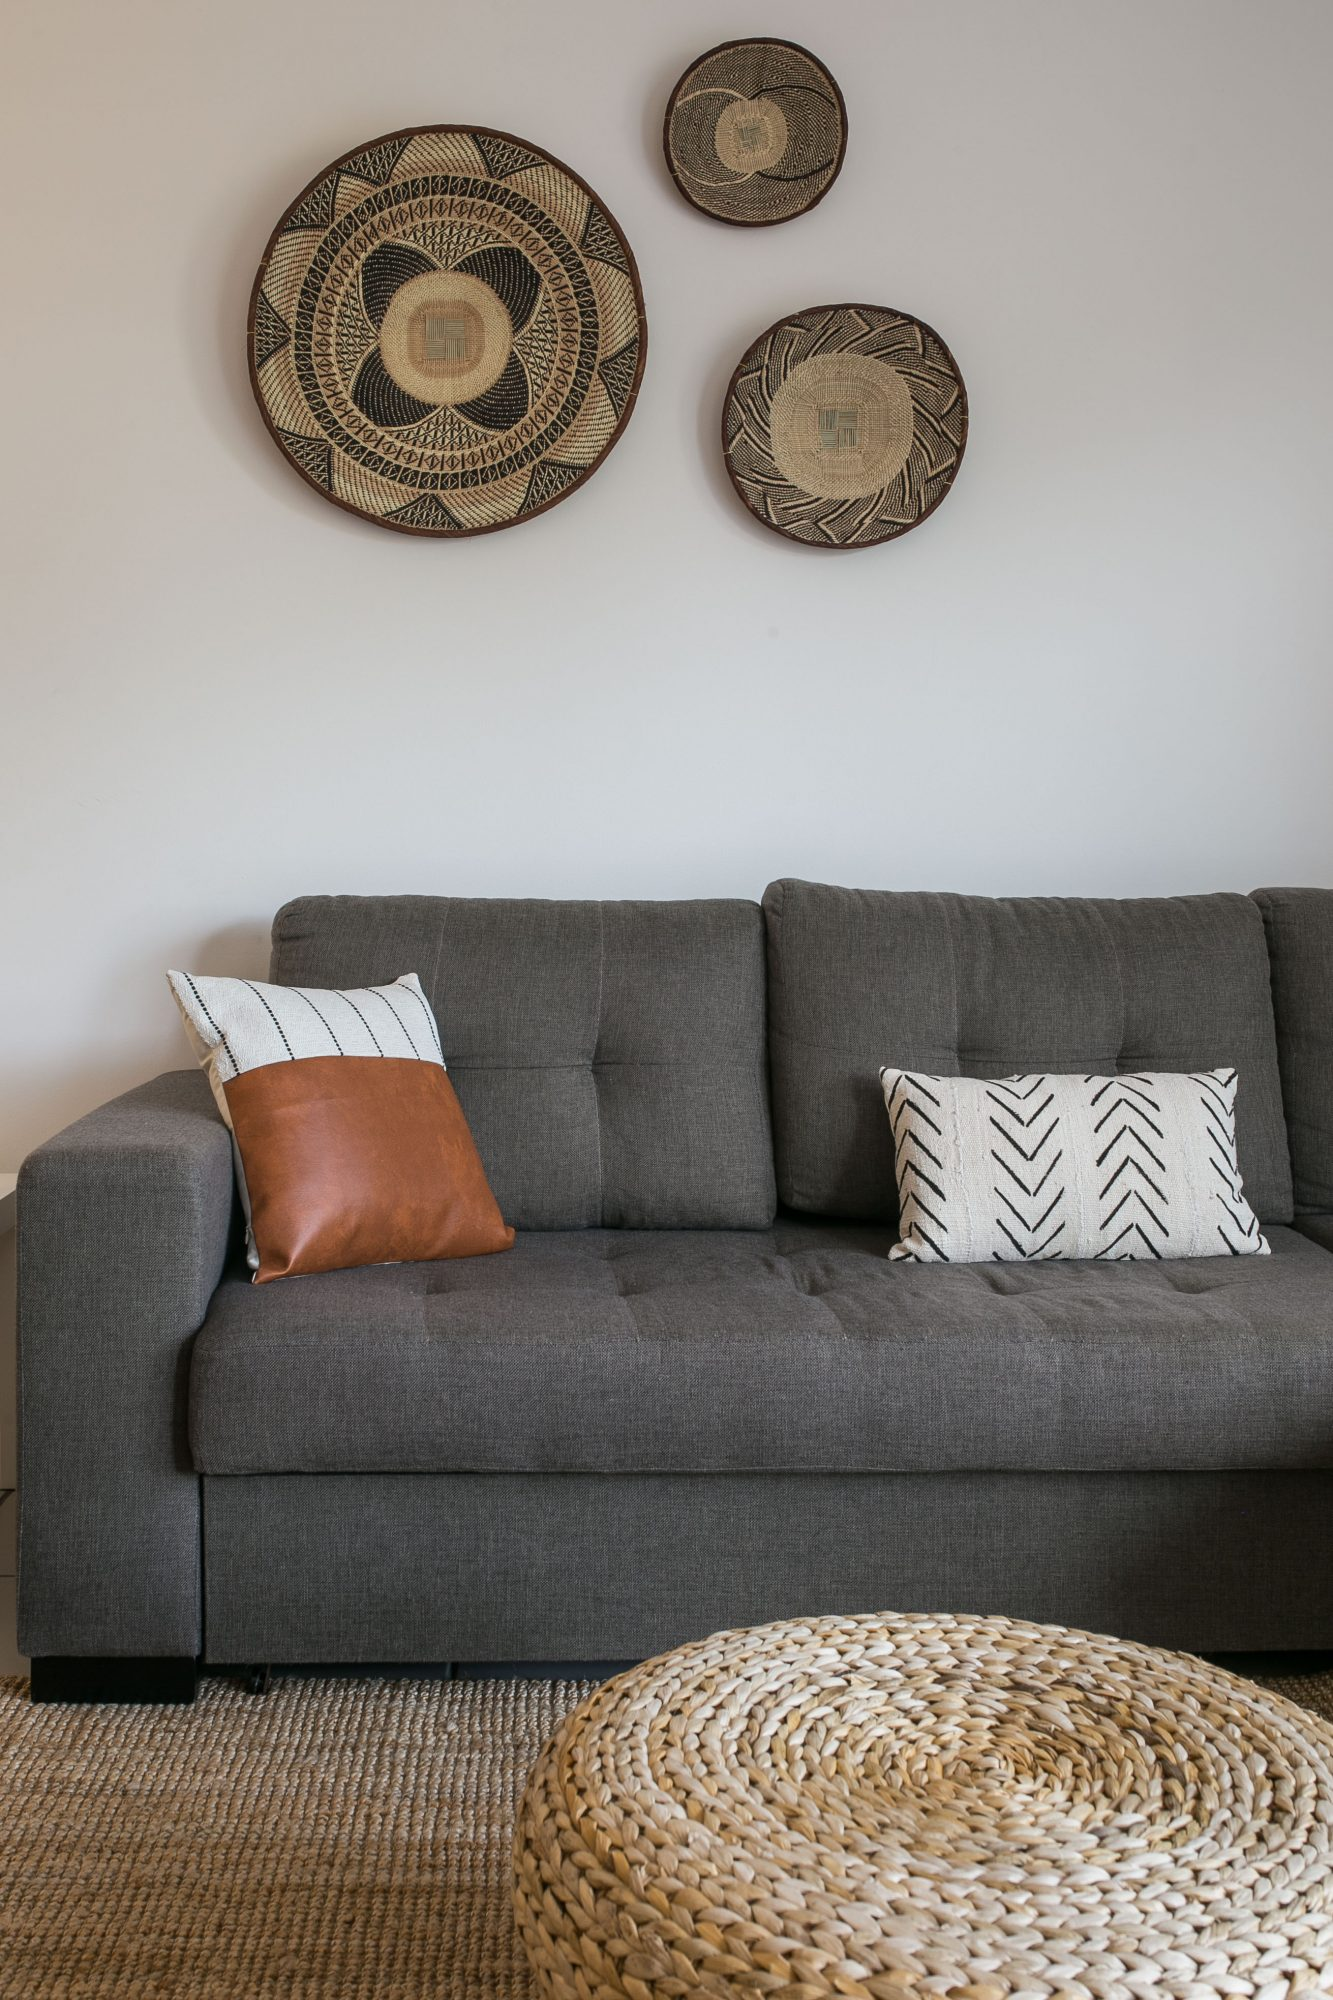 staging-soltroia-sofa